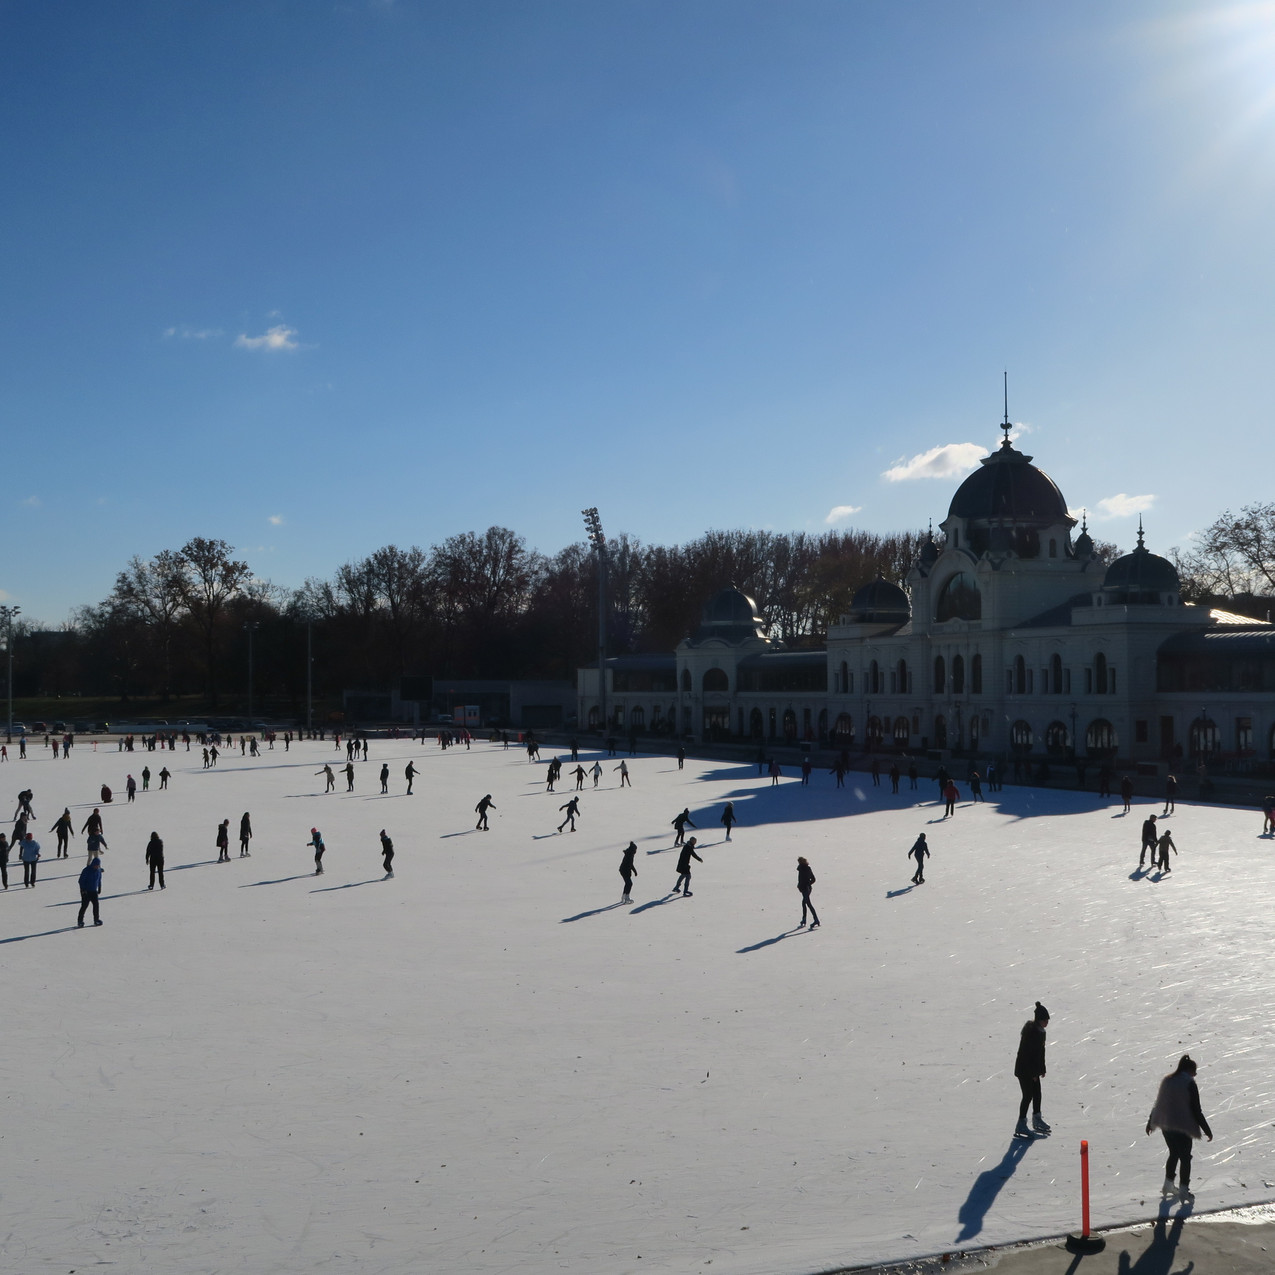 Heroes Square, Ice rink